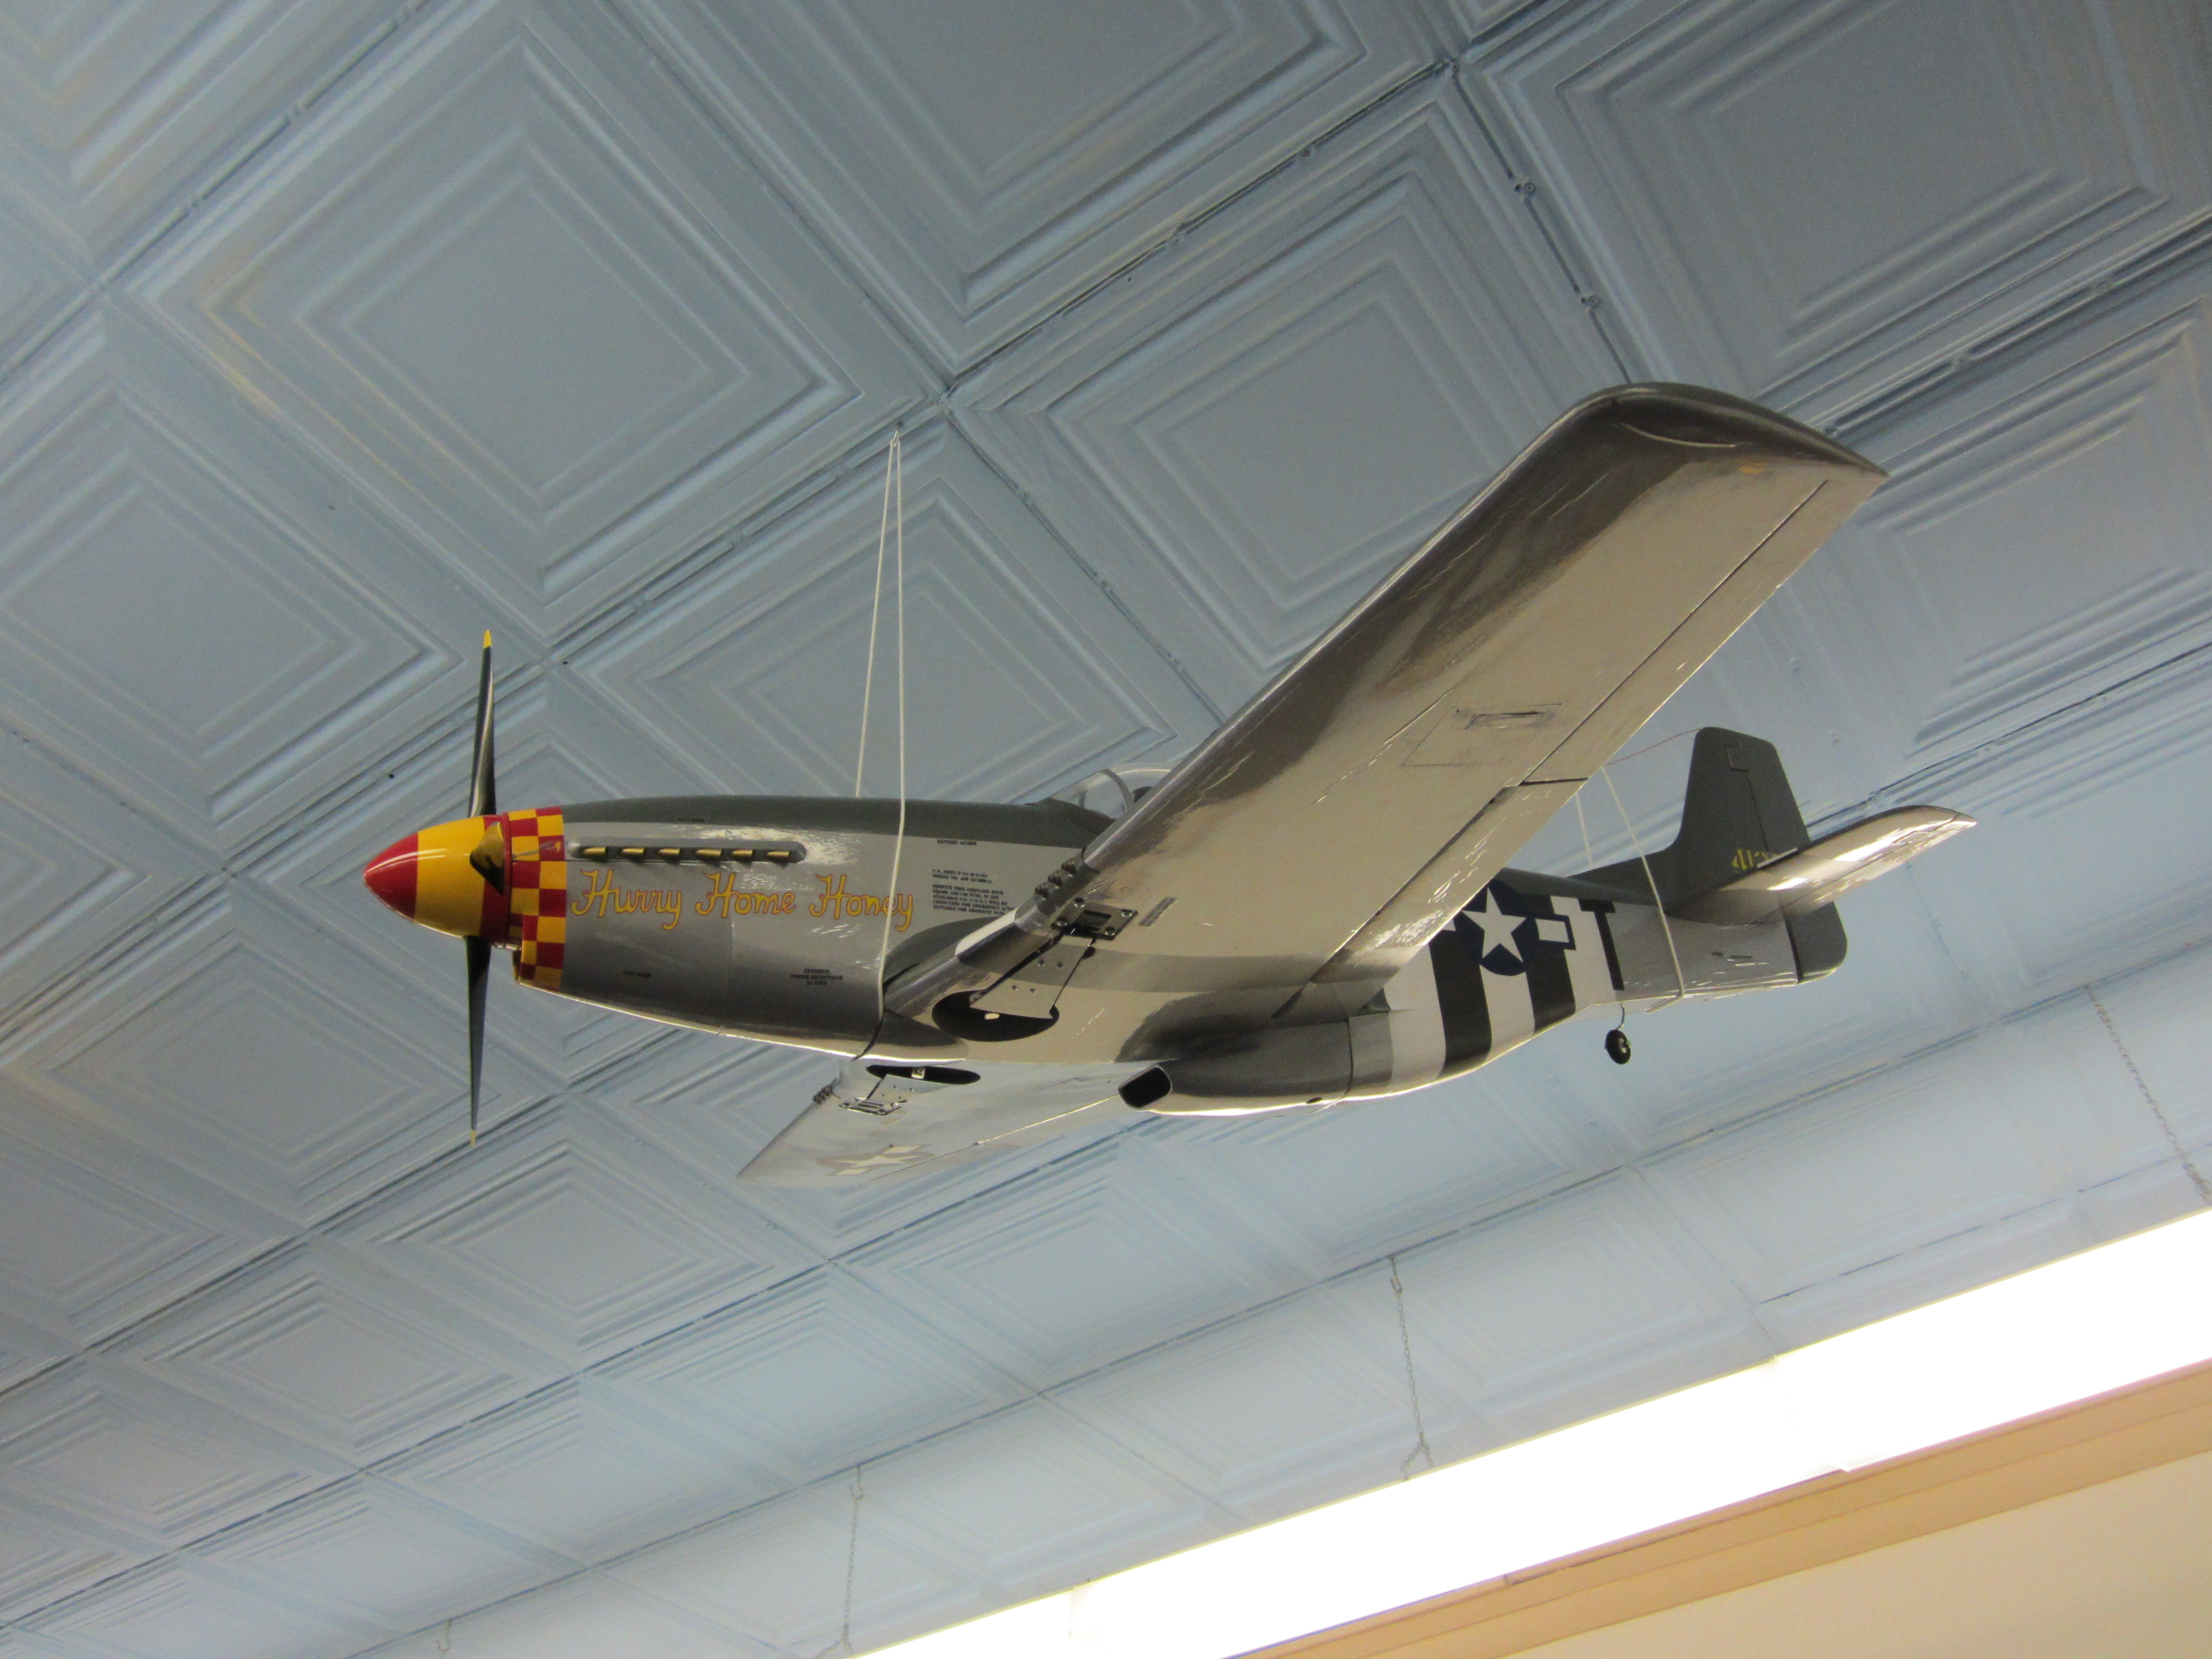 Radio controlled P-51 Mustang model airplane.